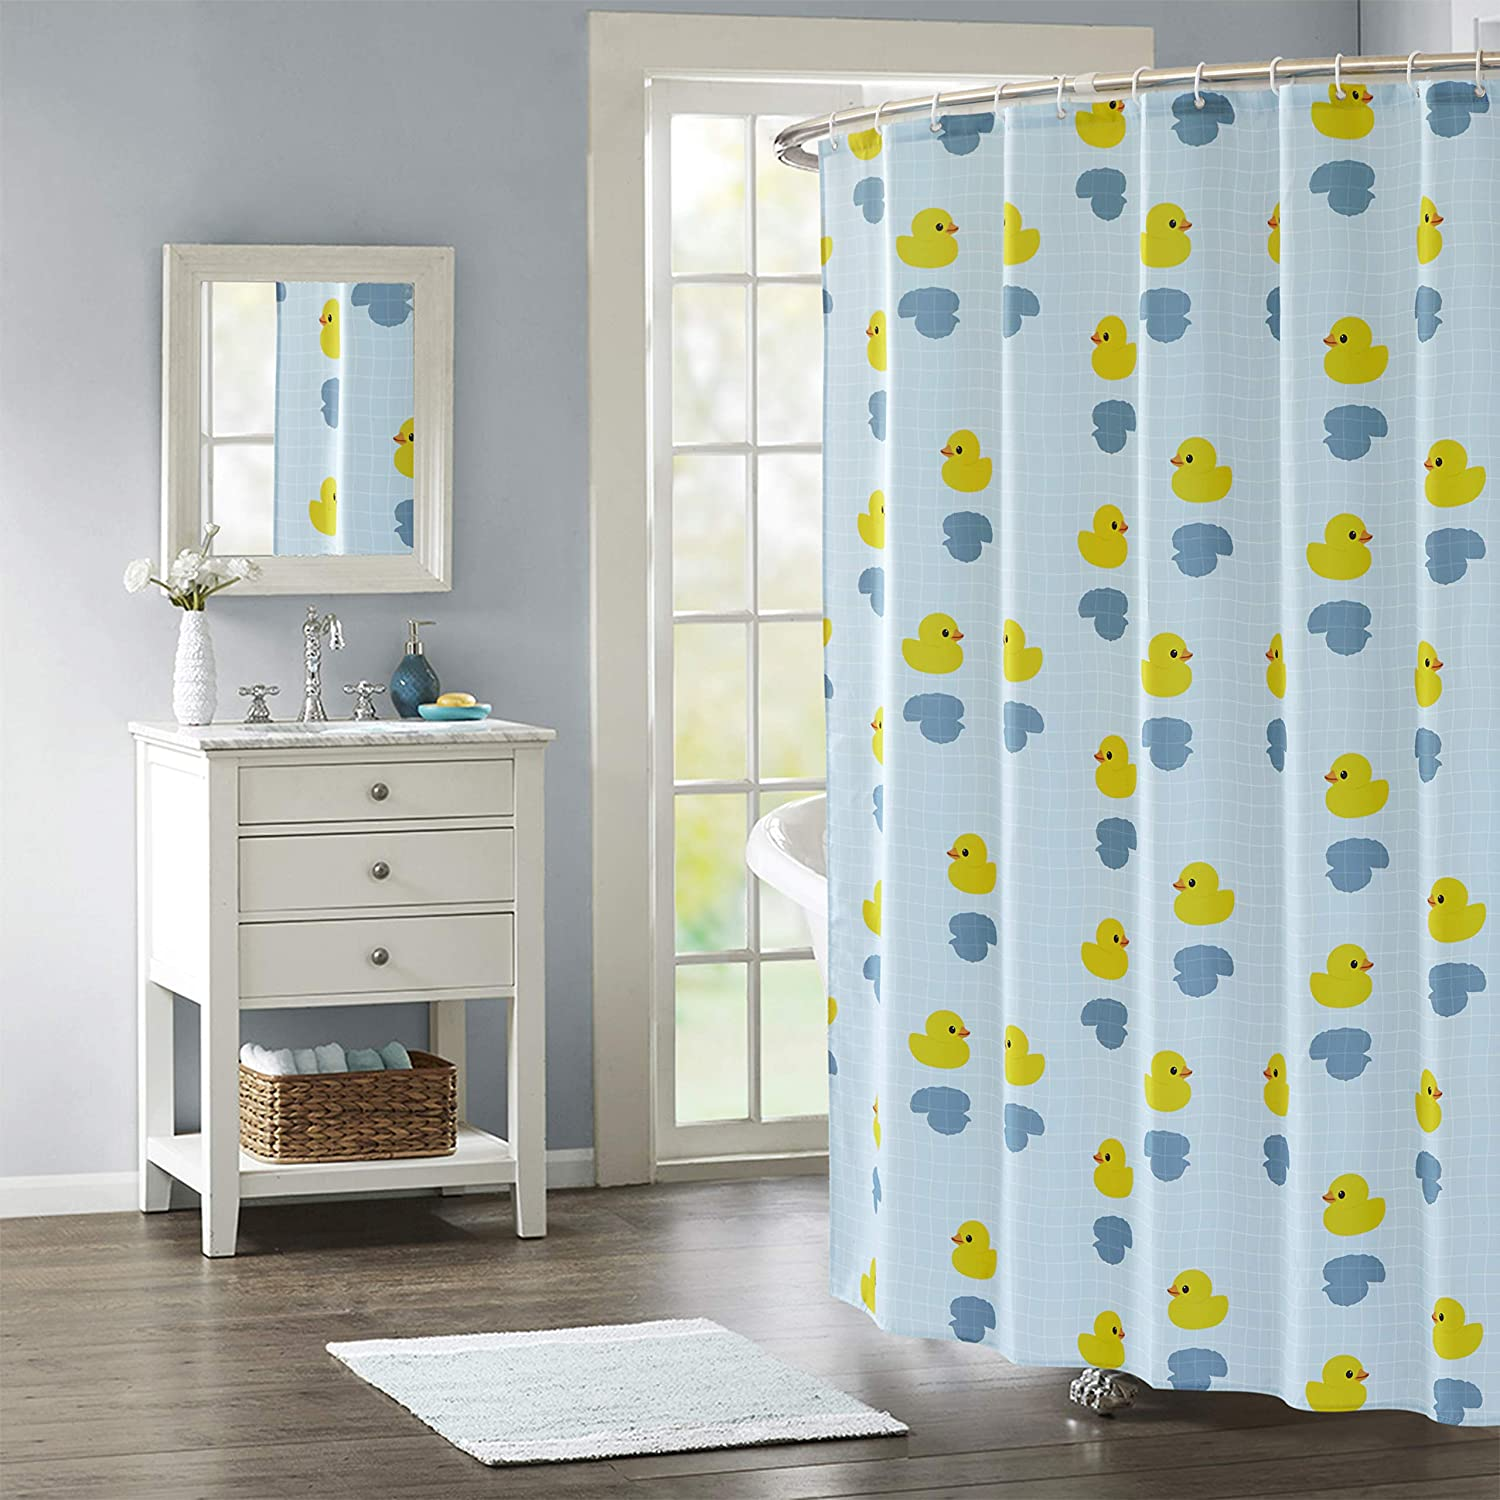 70 in x 72 in Rainbow Canvas Shower Curtain with Matching Resin Hooks Set